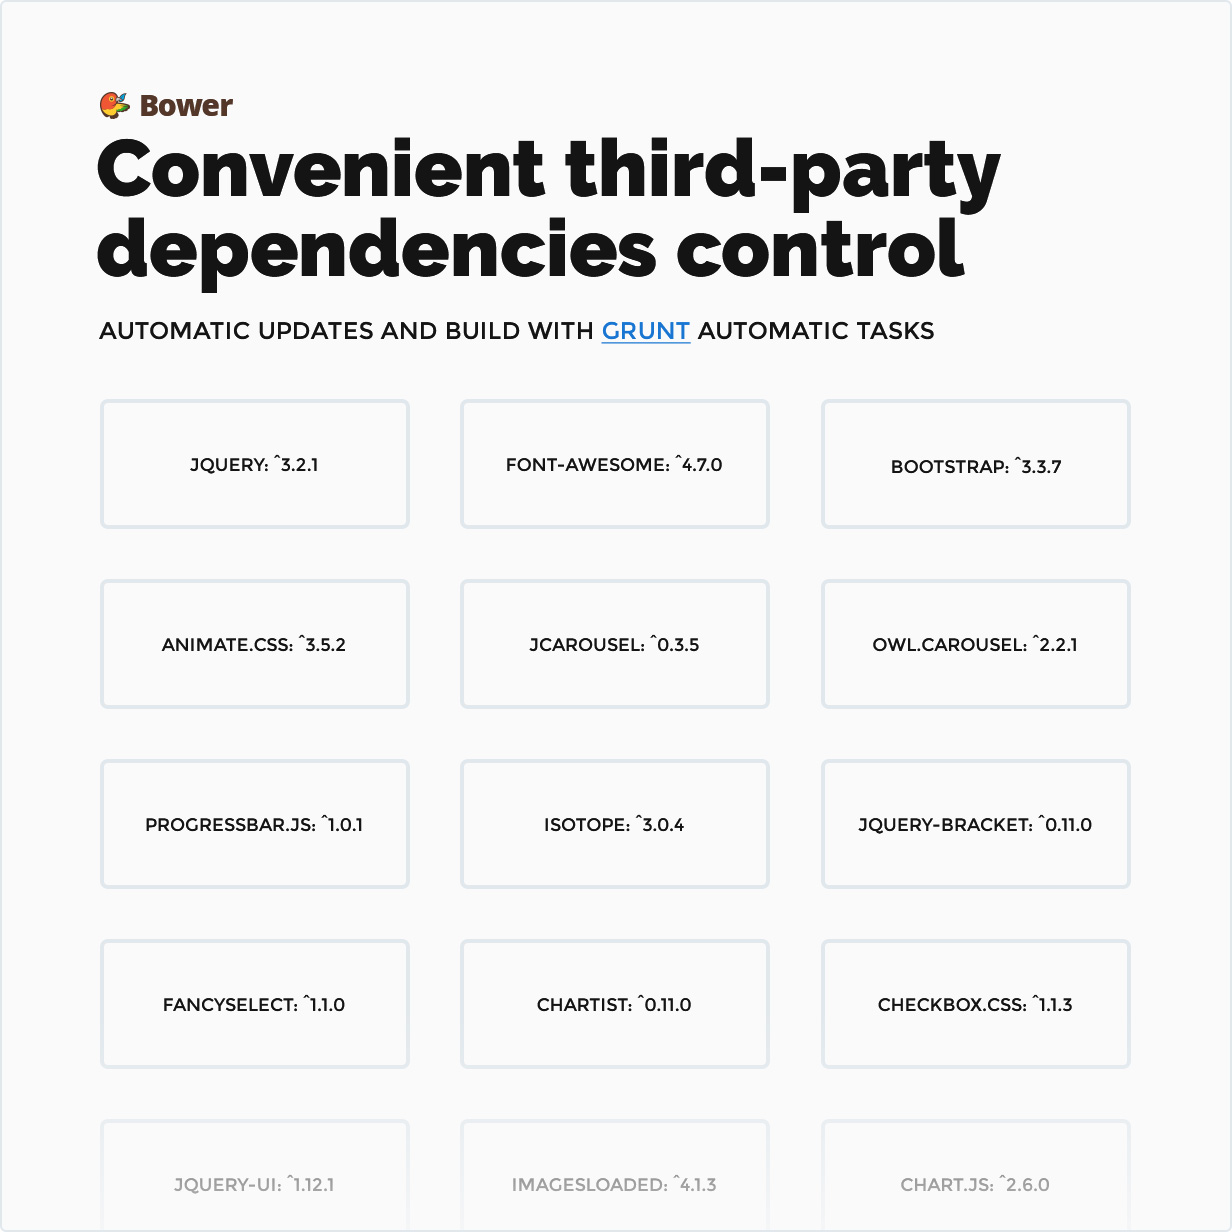 Convenient third-party dependencies control with Bower